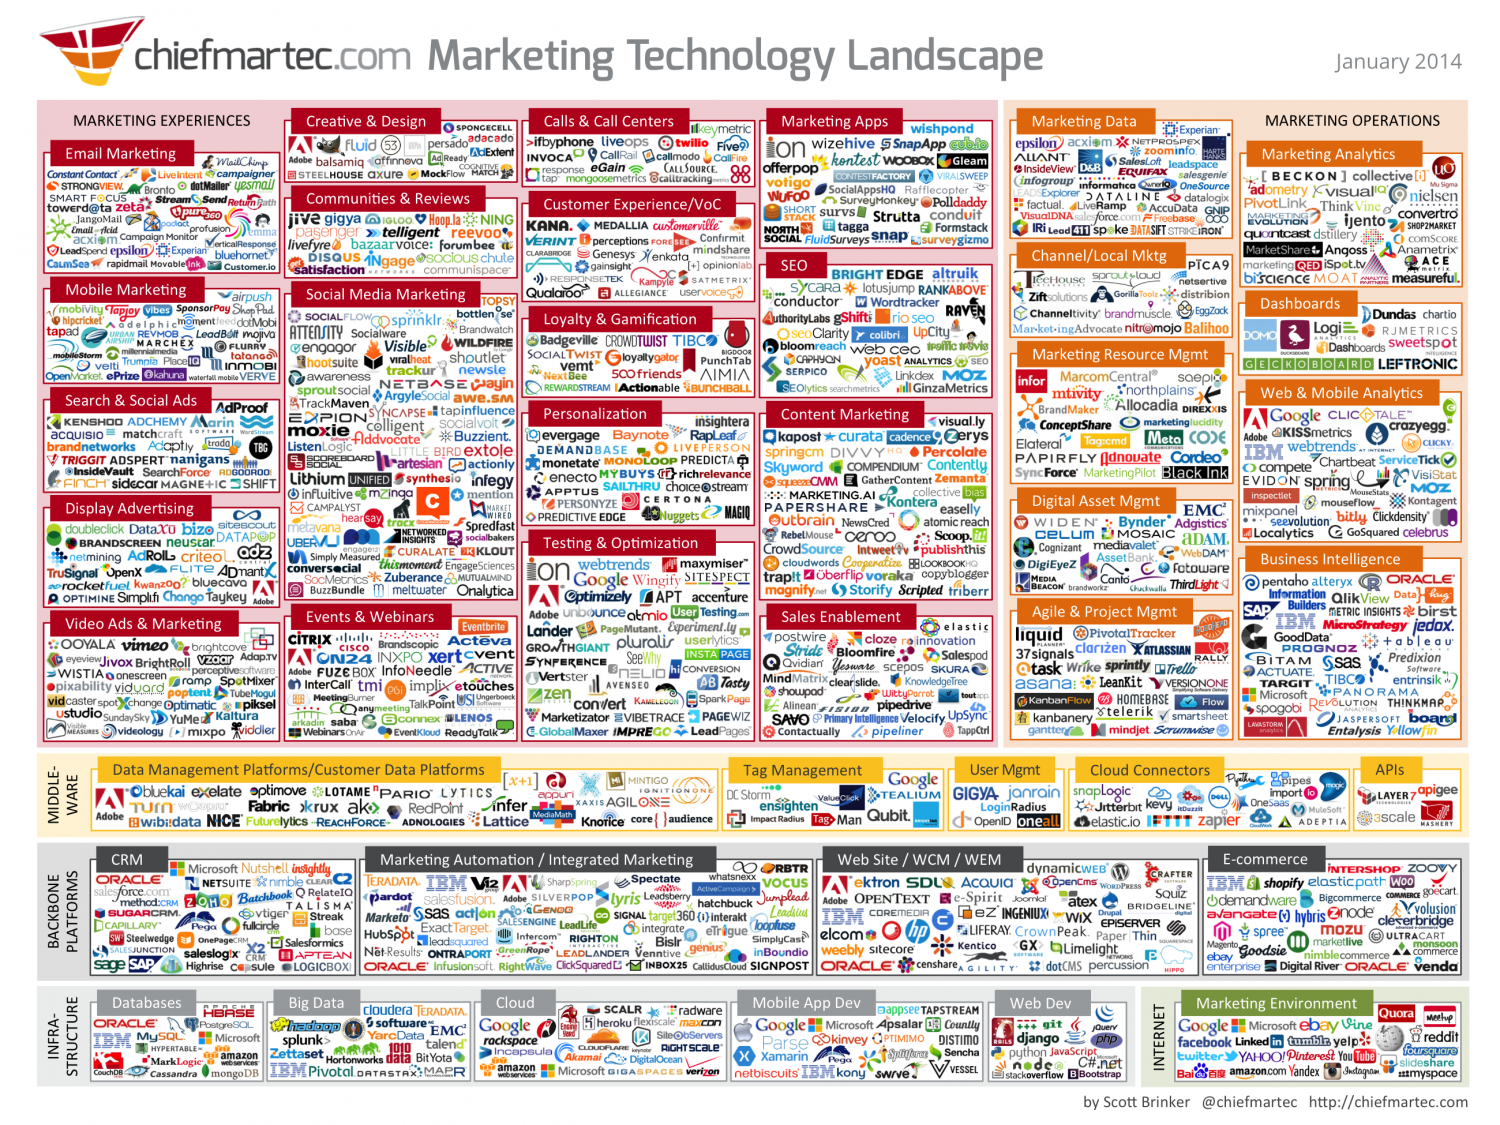 Infographic - 2014 Marketing Technology Landscape